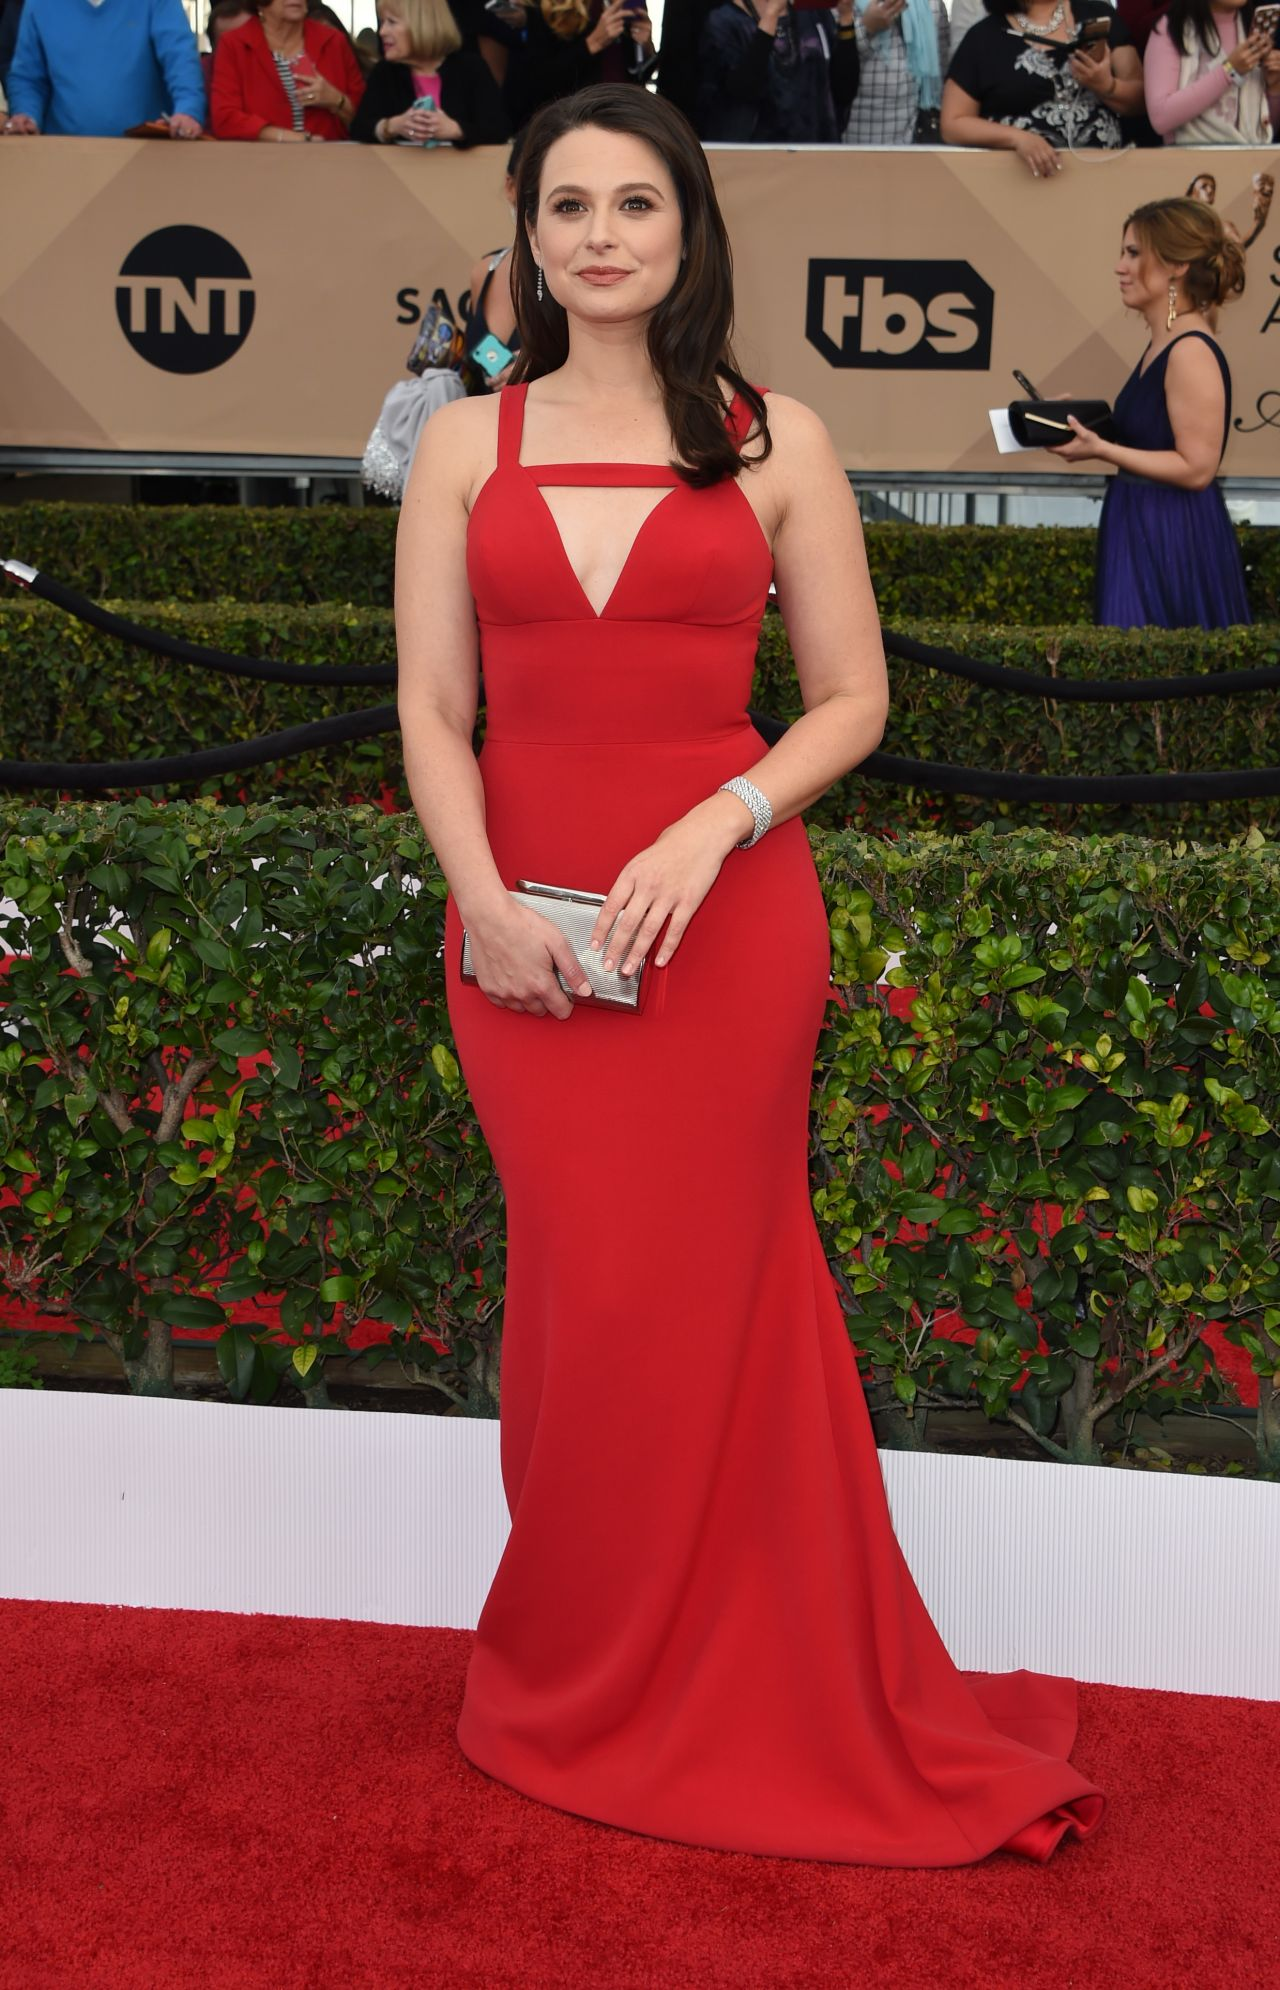 katie-lowes-sag-awards-2016-at-shrine-auditorium-in-los-angeles-1